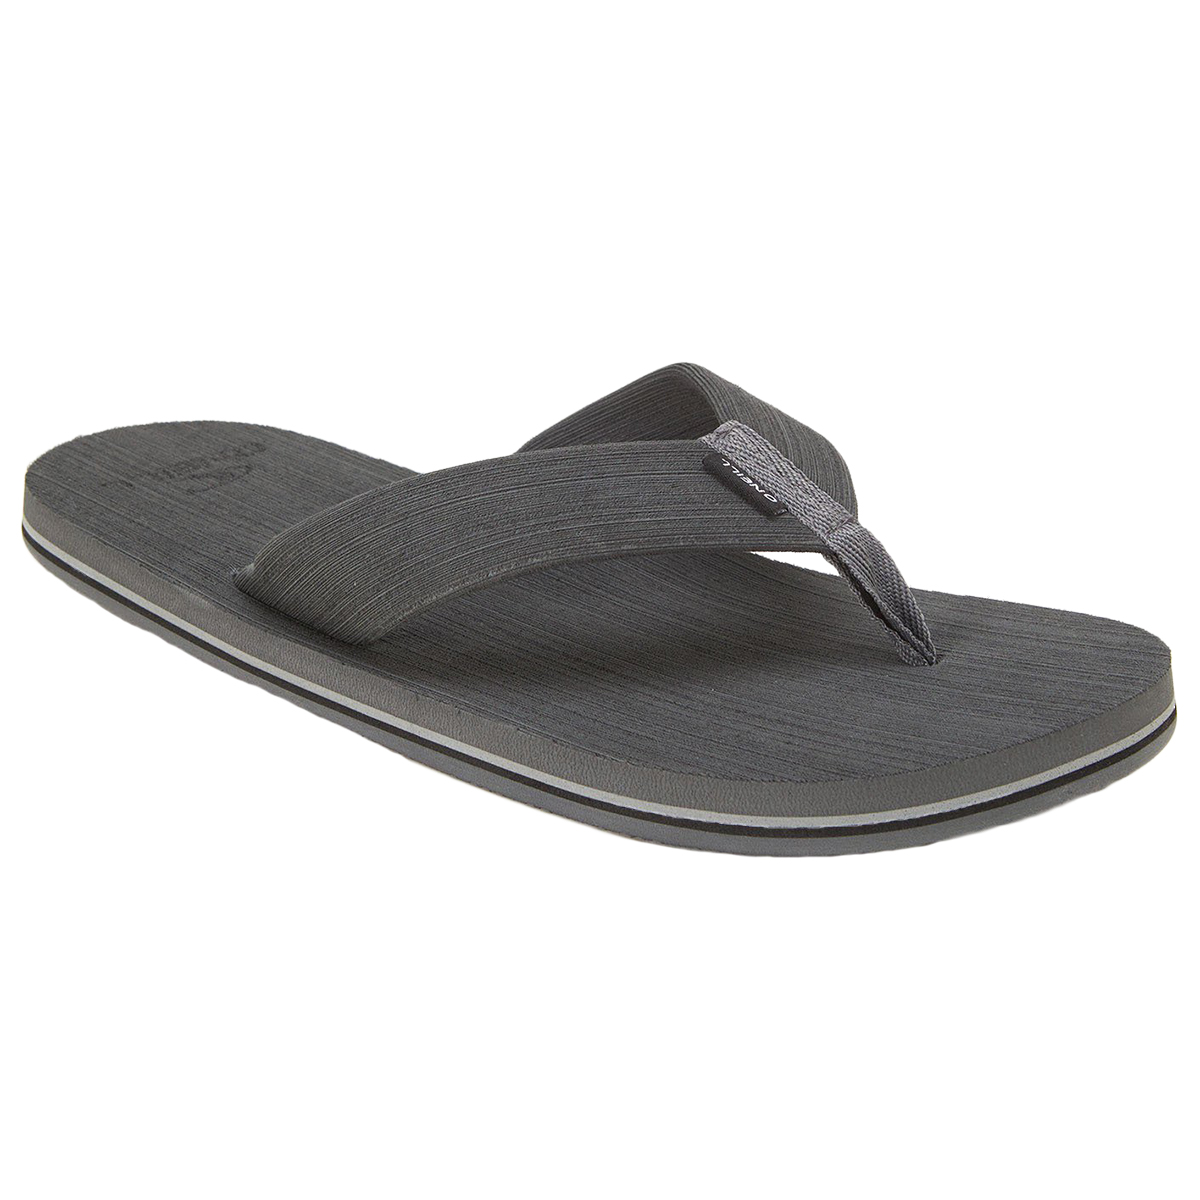 O'neill Men's Phluff Daddy Sandals - Black, 12